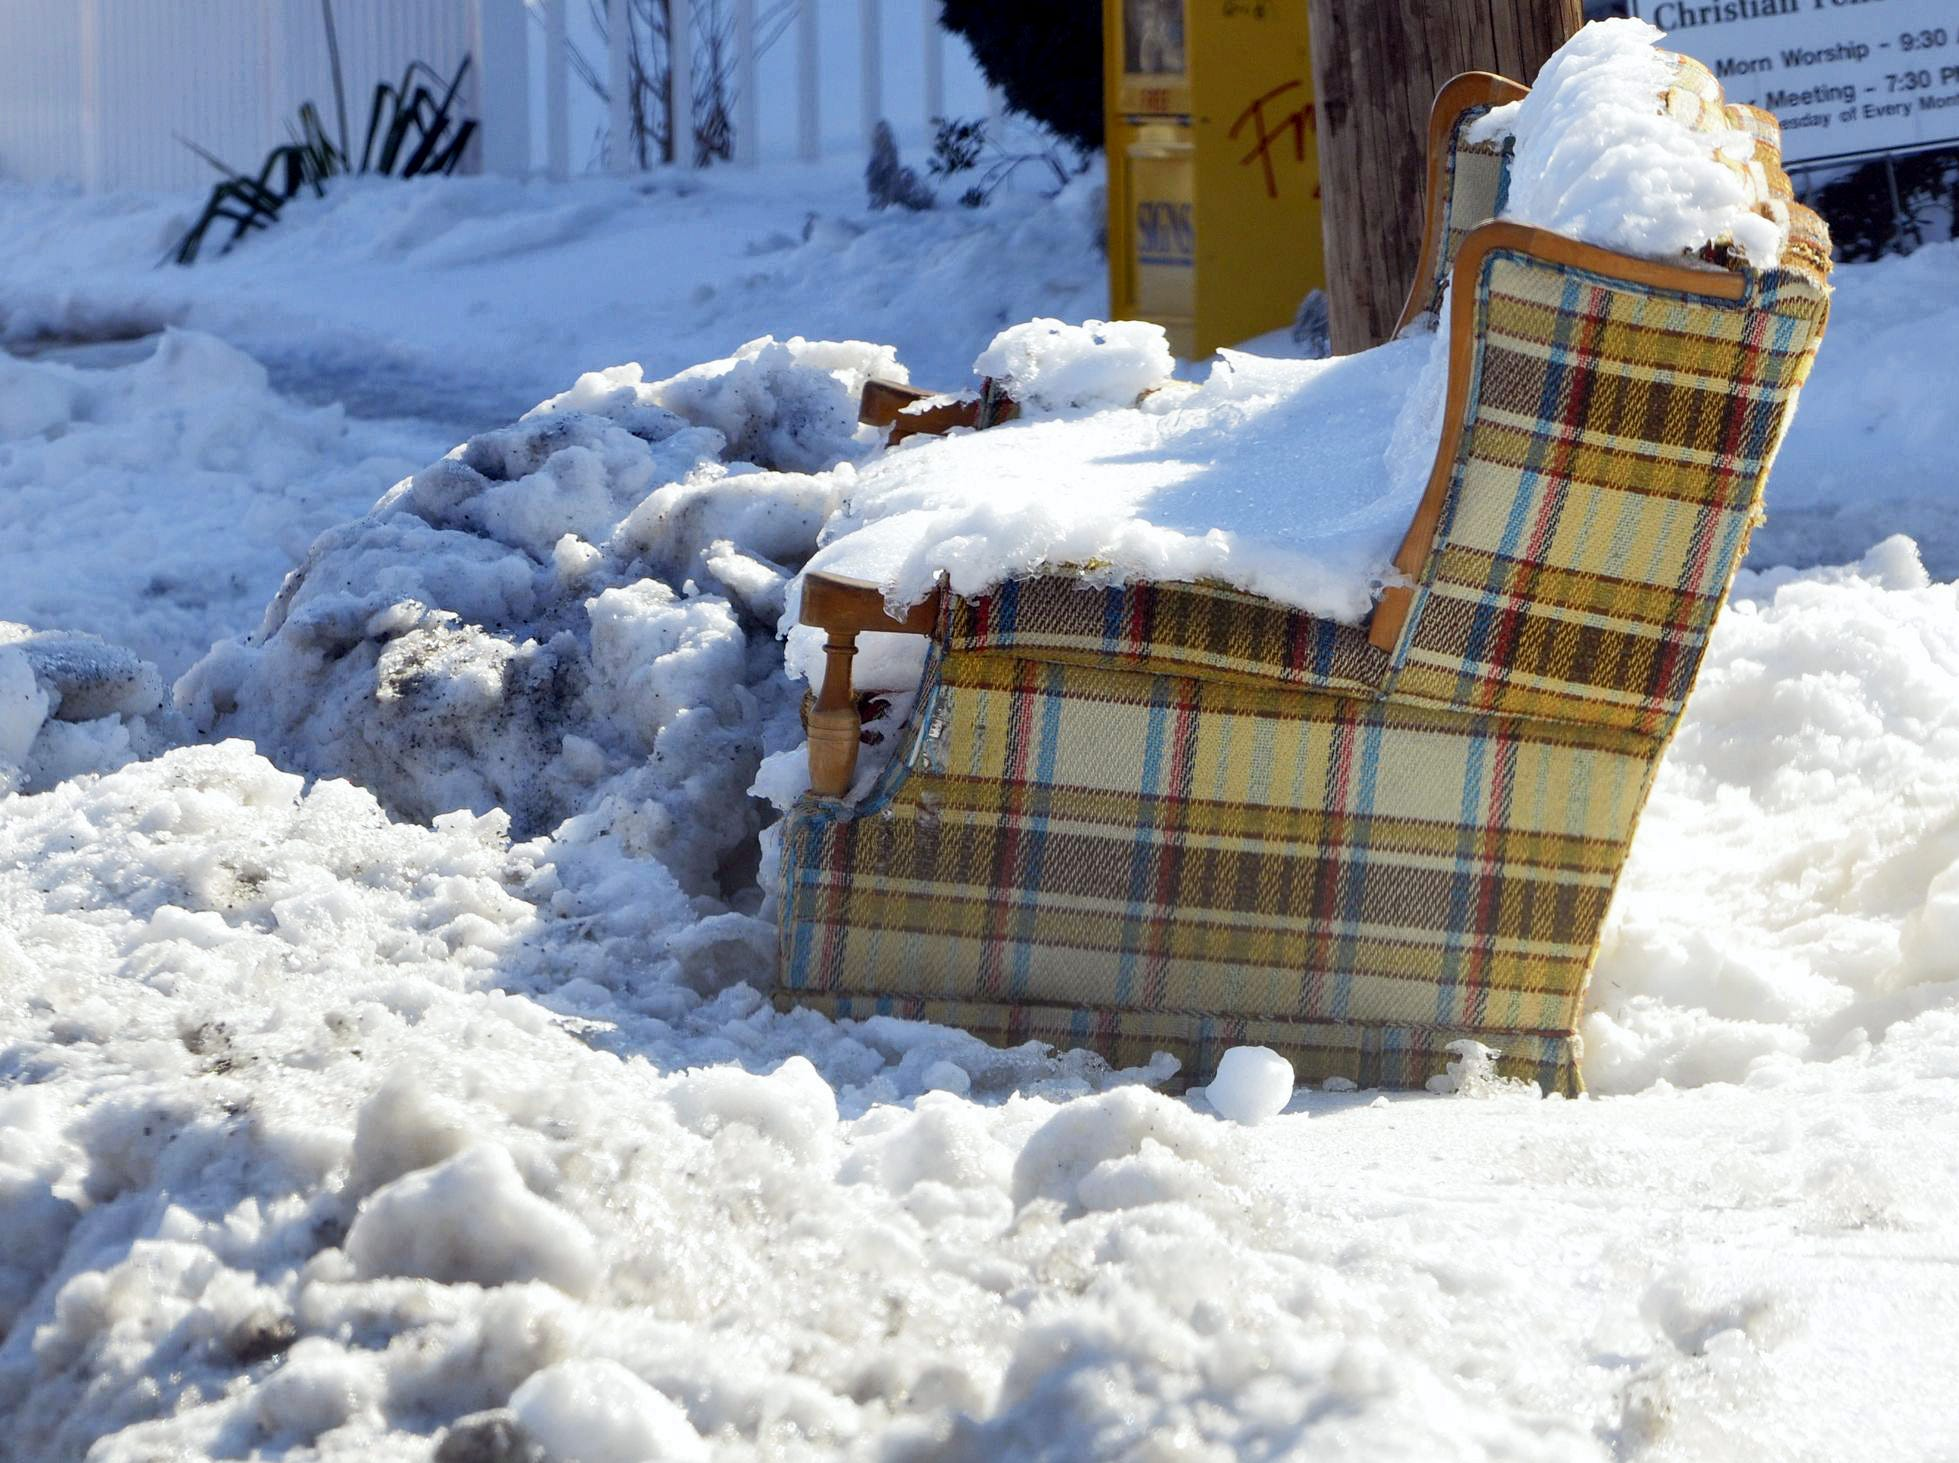 Discarded sofa: Was this a plan to save a as-yet-unshoveled parking space in Chambersburg, or just trash to be picked up?